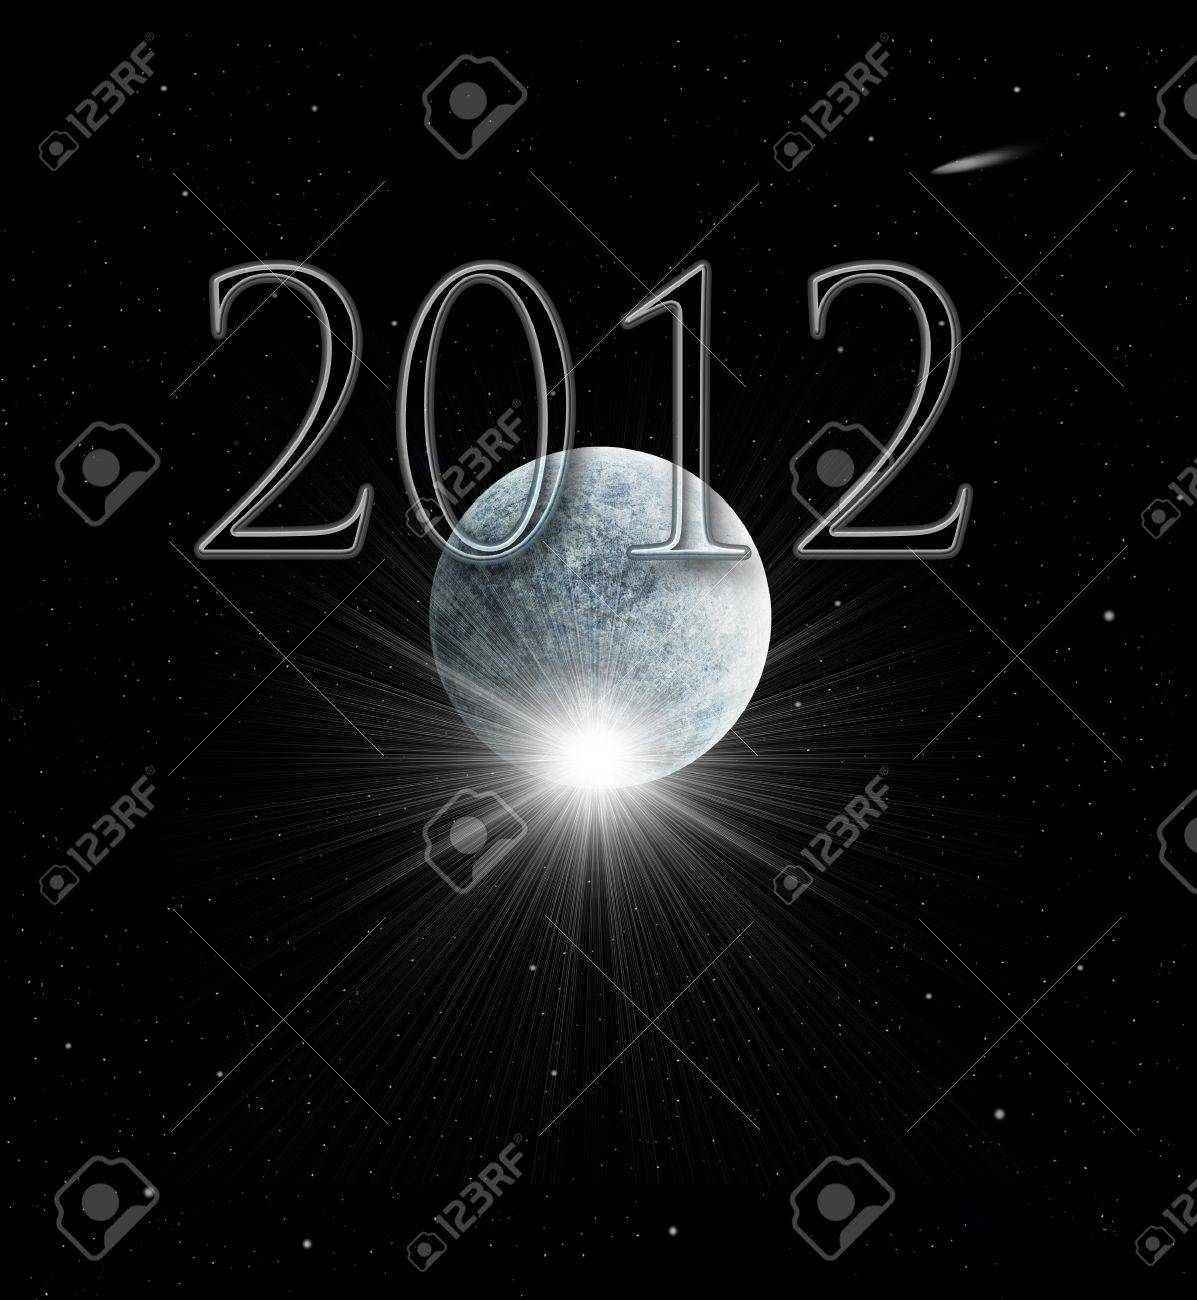 Illustration of the Year 2012 in Mayan prophecy Stock Illustration - 9323759